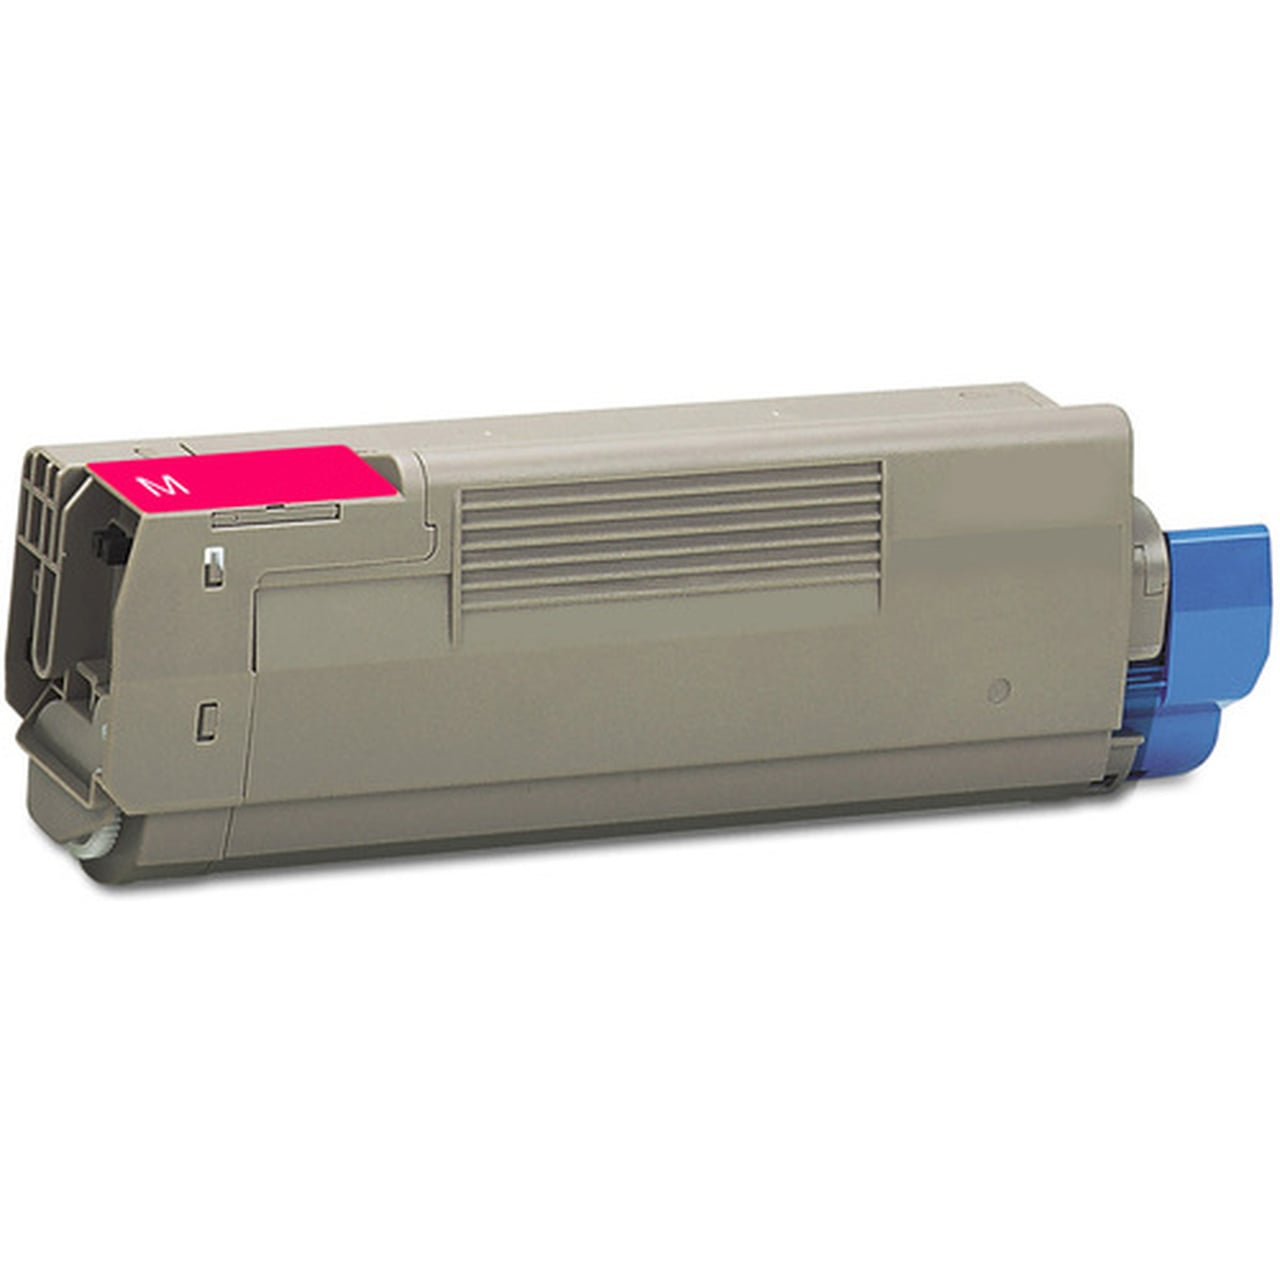 43324402 Toner Cartridge - Okidata Compatible (Magenta)